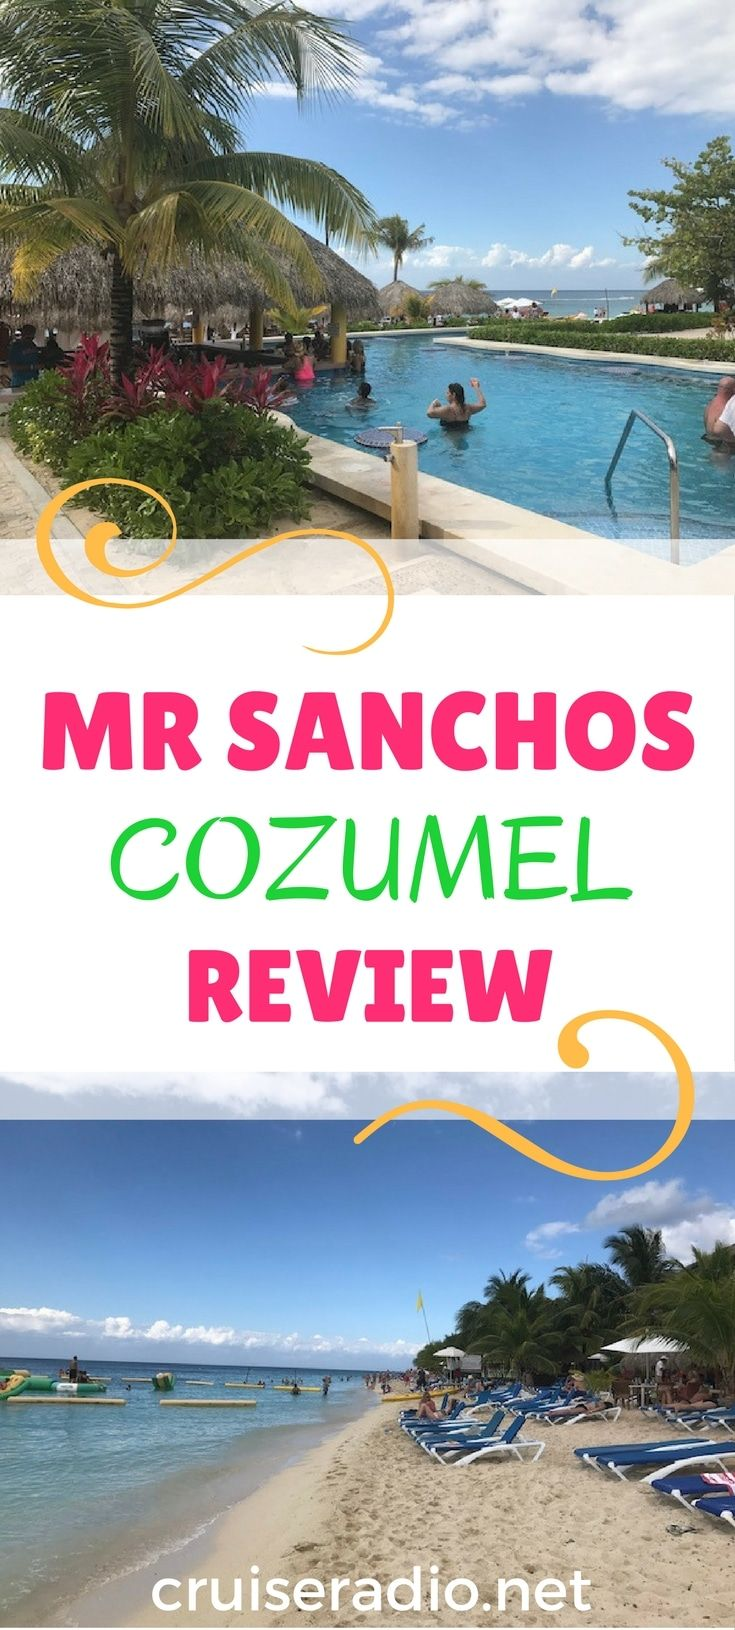 Mr. Sanchos is an extremely popular beach break destination for cruisers, and its prices and amenities have few local rivals.